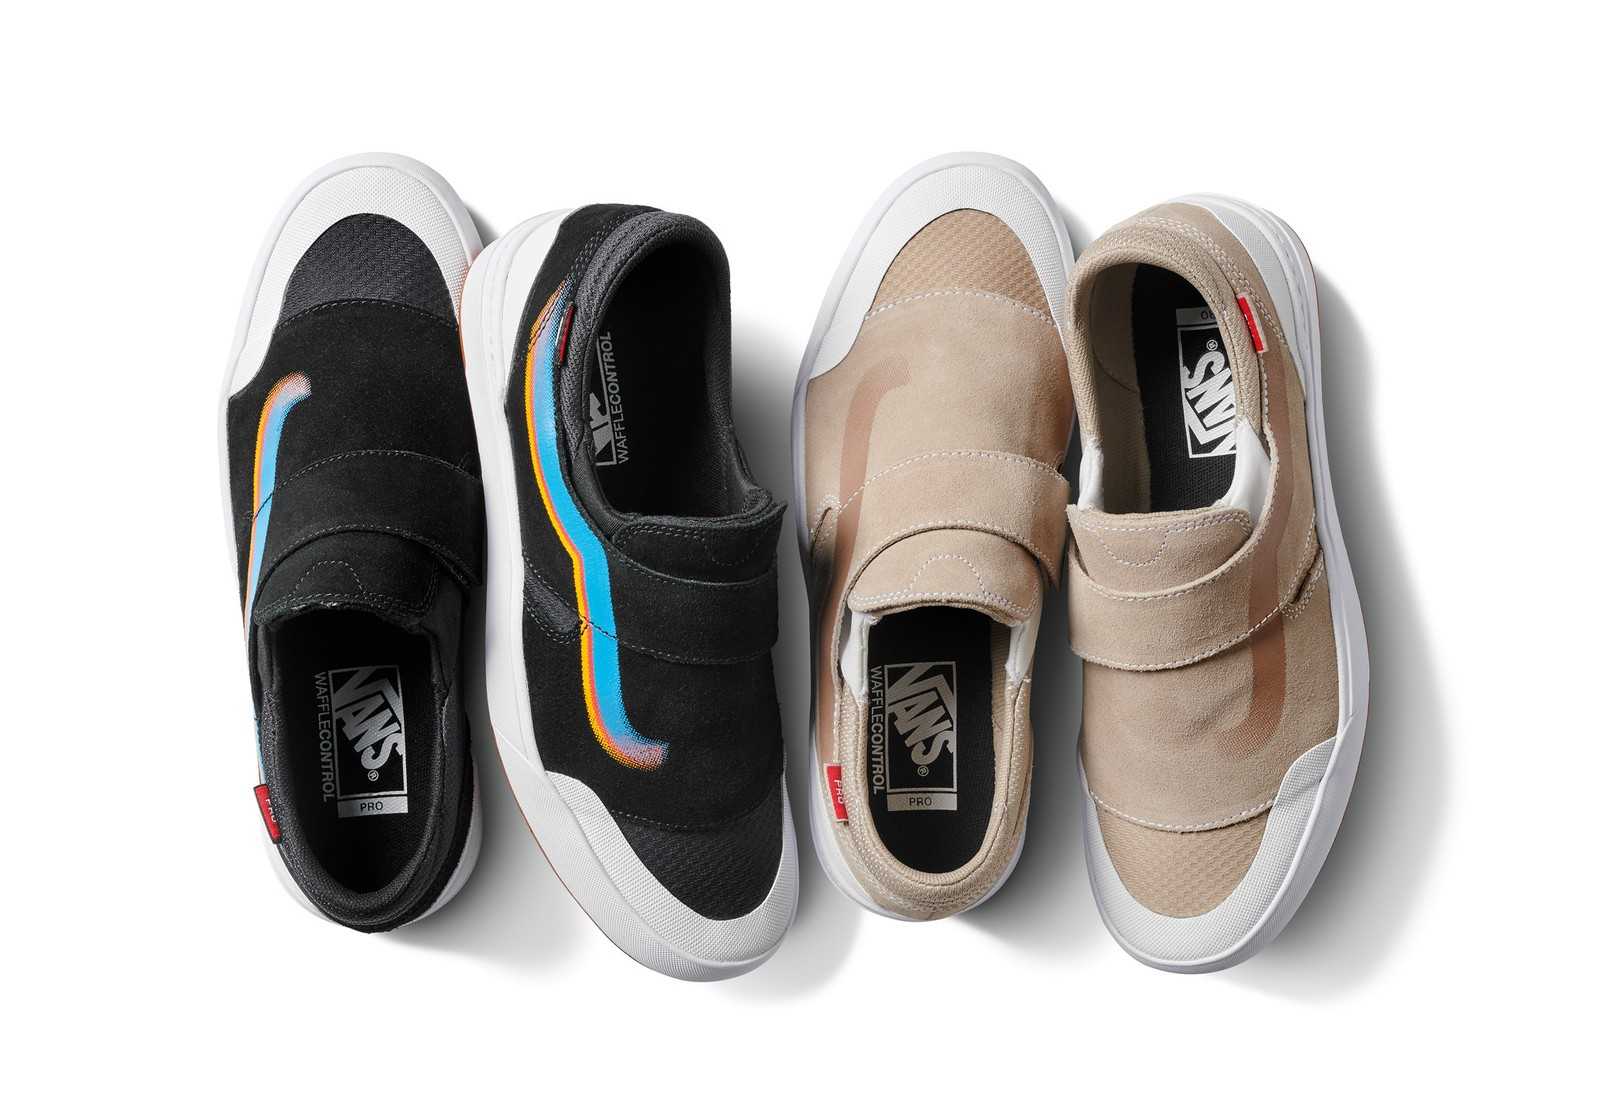 Vans Releases Slip-On Exp Pro Shoe With WaffleControl Sole